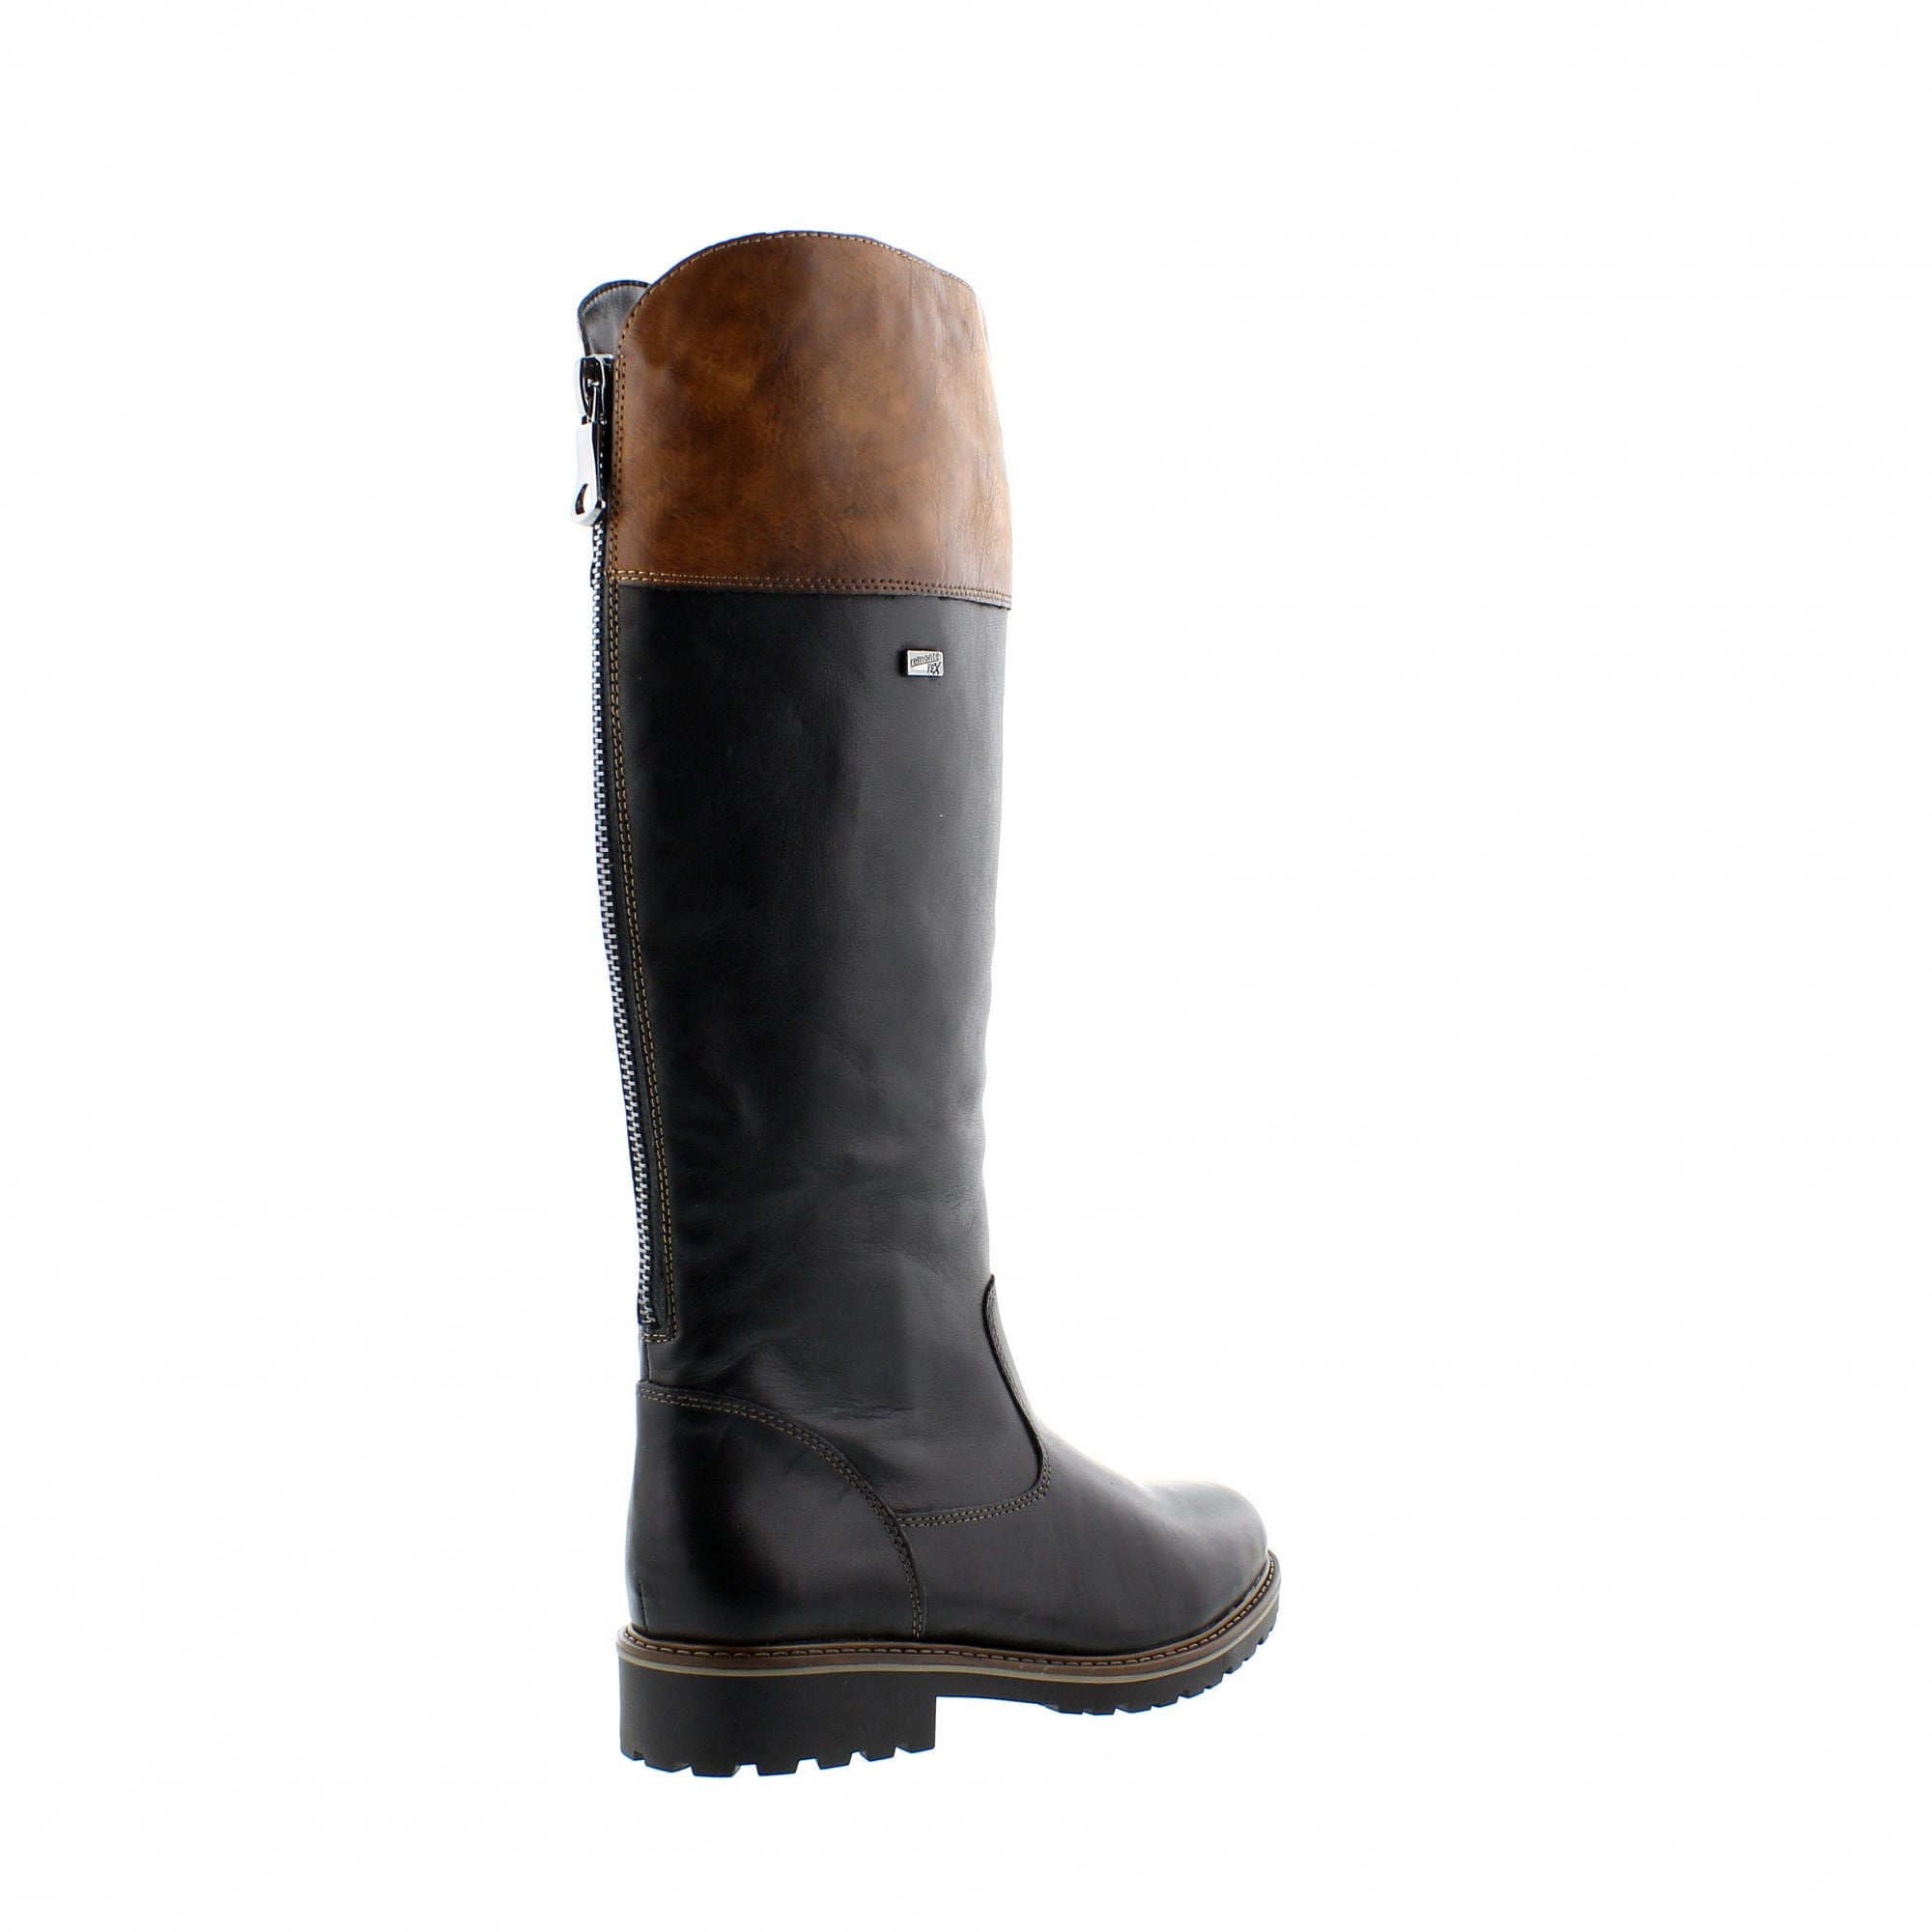 Remonte R6581 22 Brown Knee High Boots